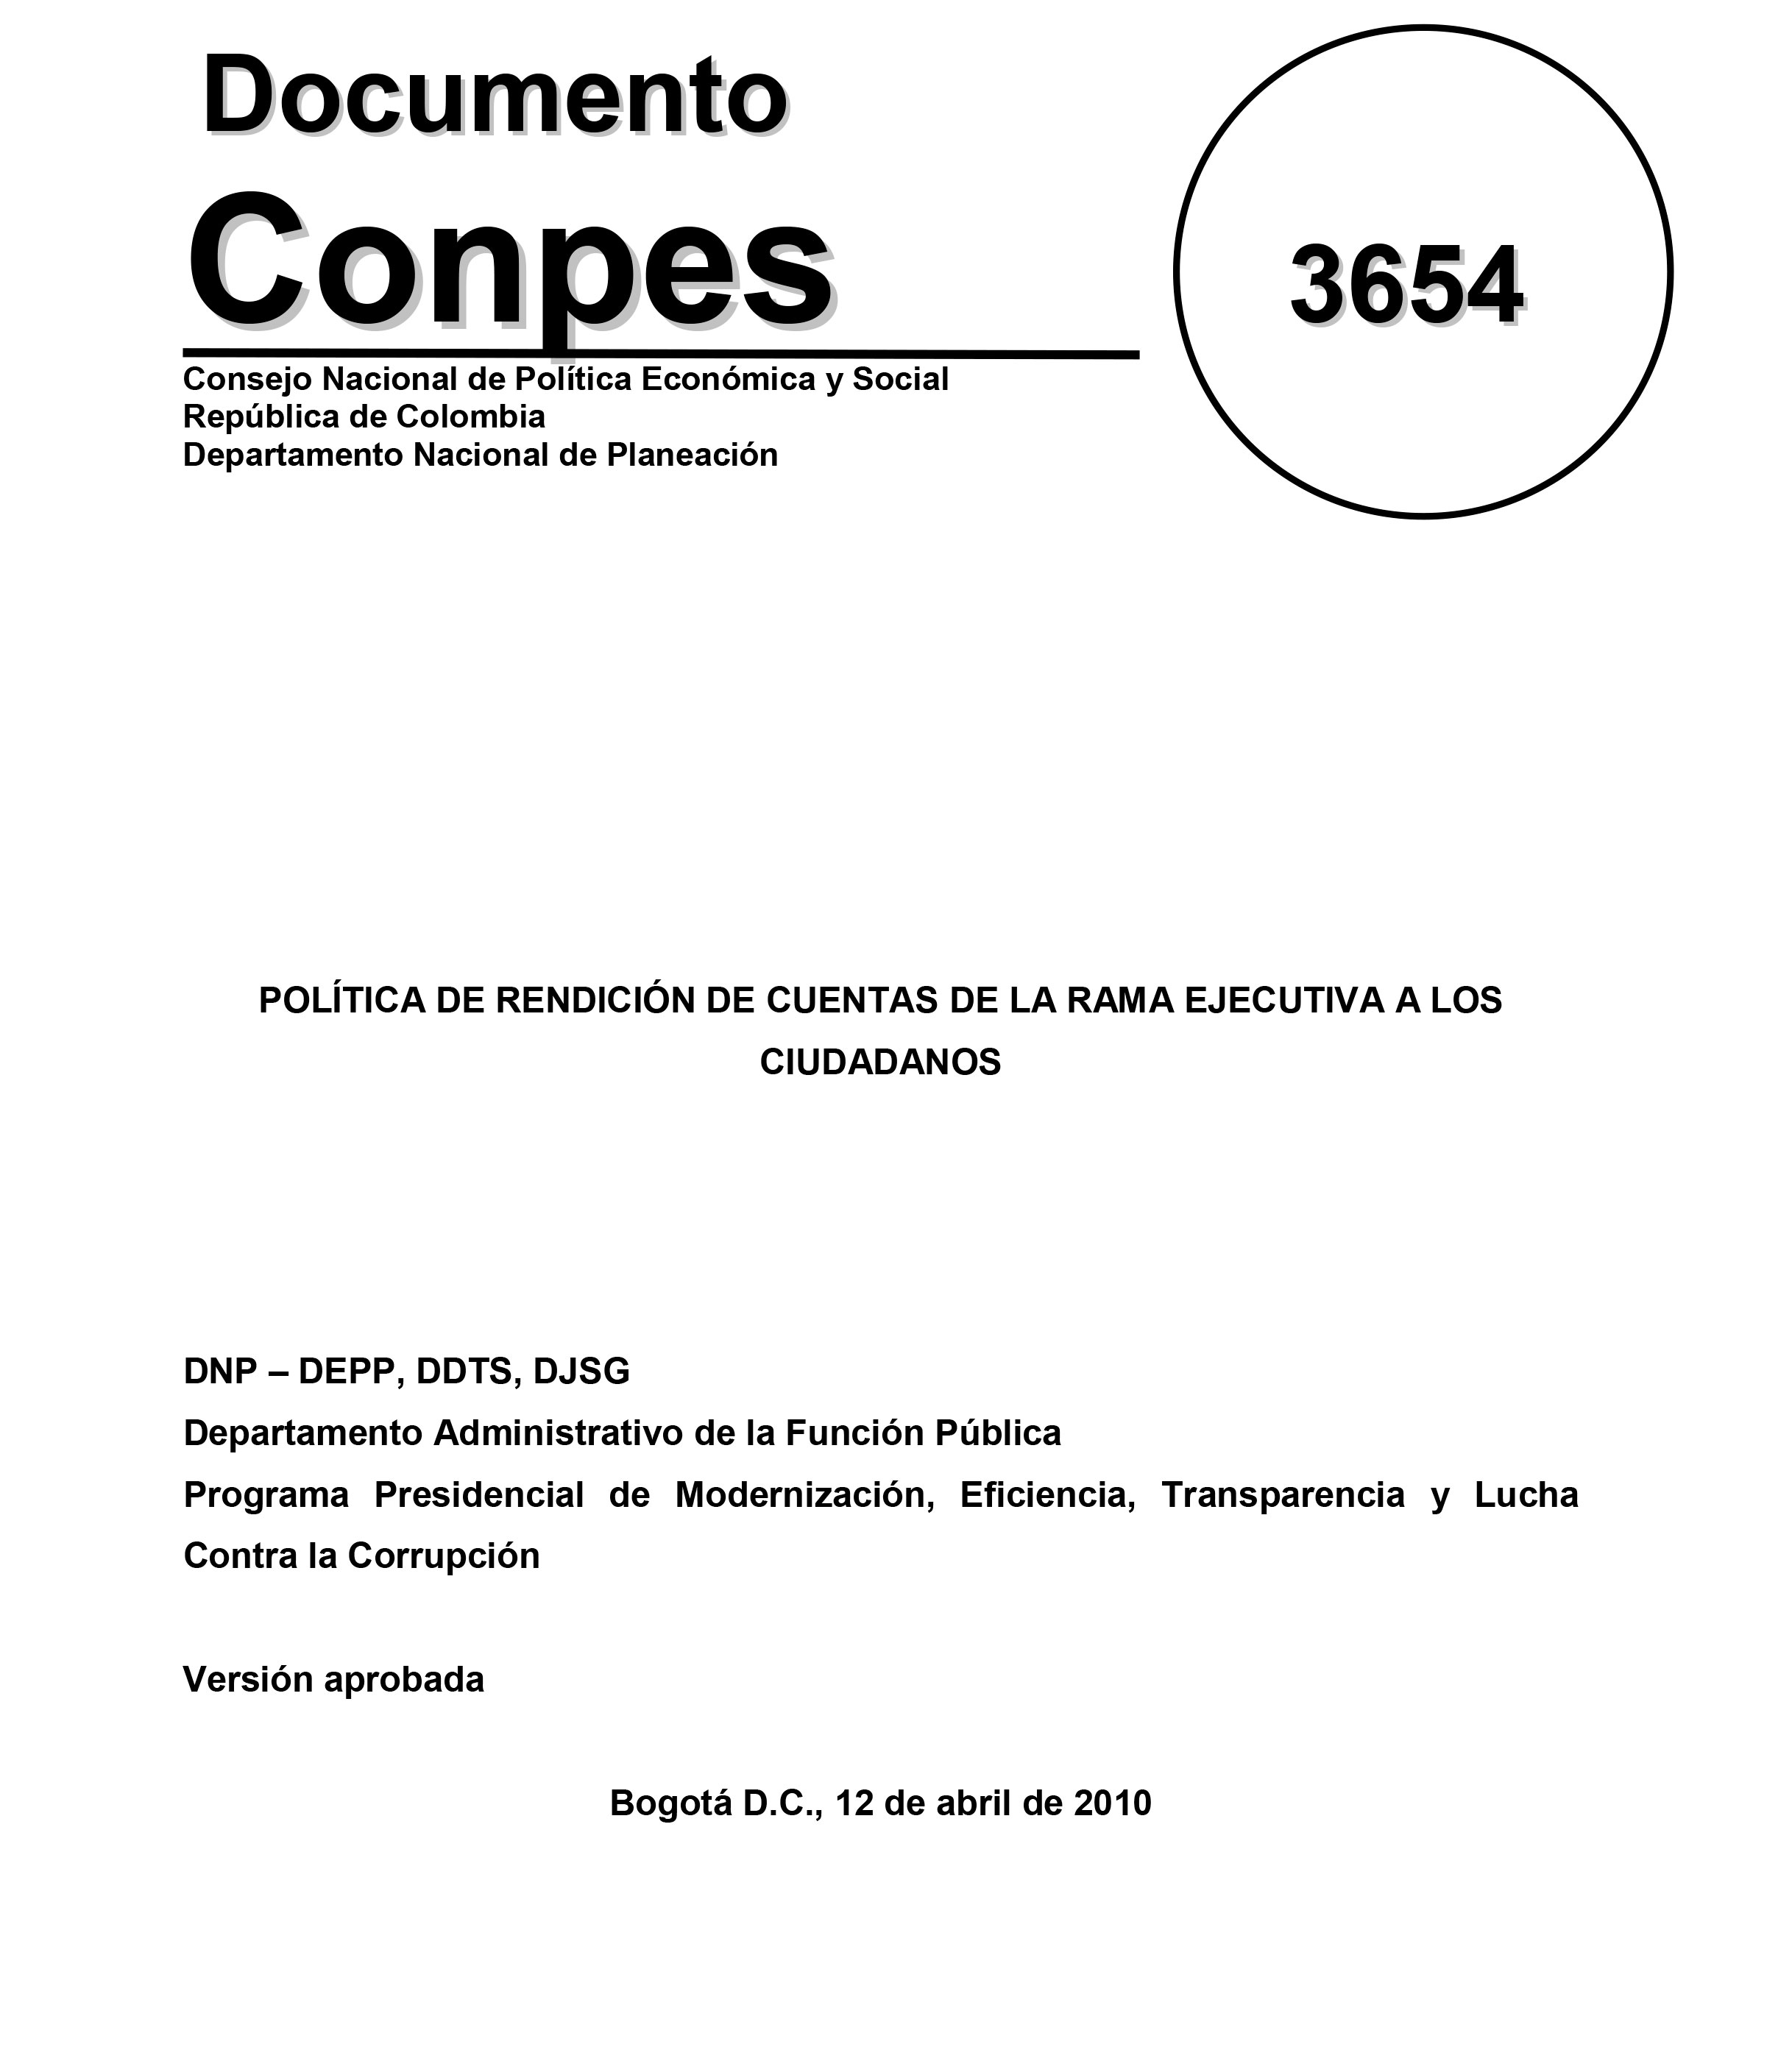 Documento CONPES 3654